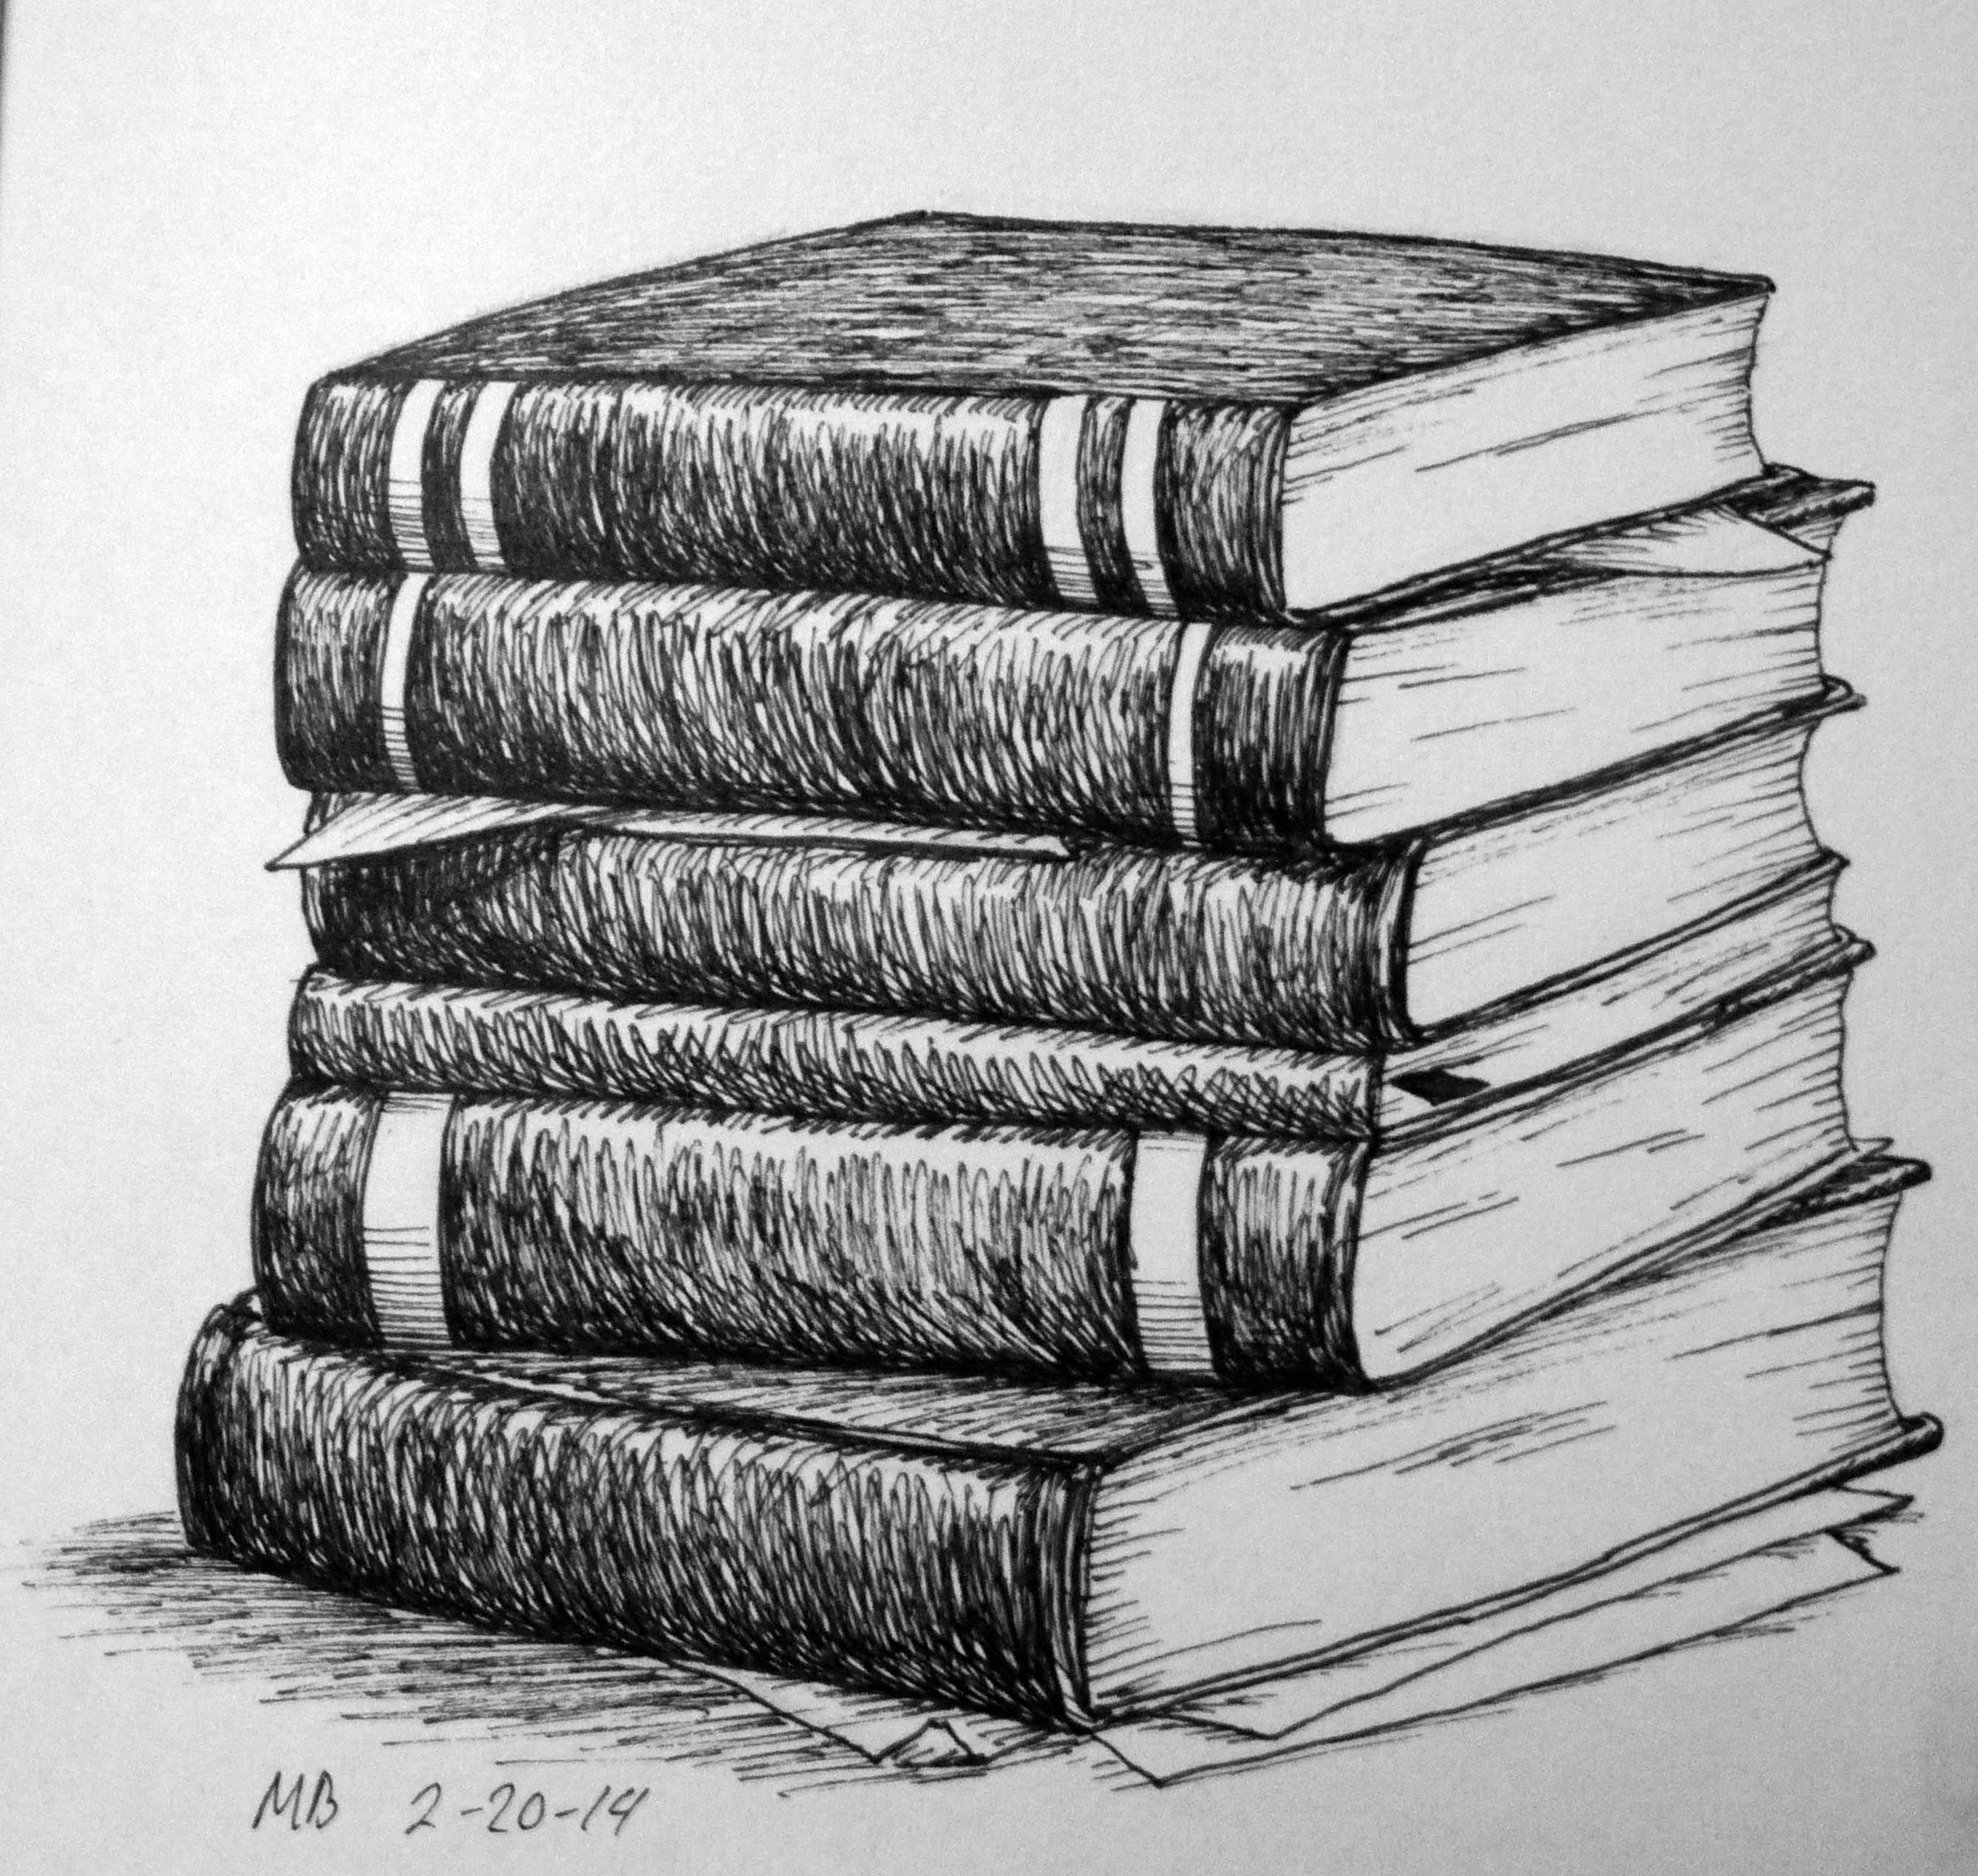 stack of books pencil drawing - Google Search | Still Life Ideas ...